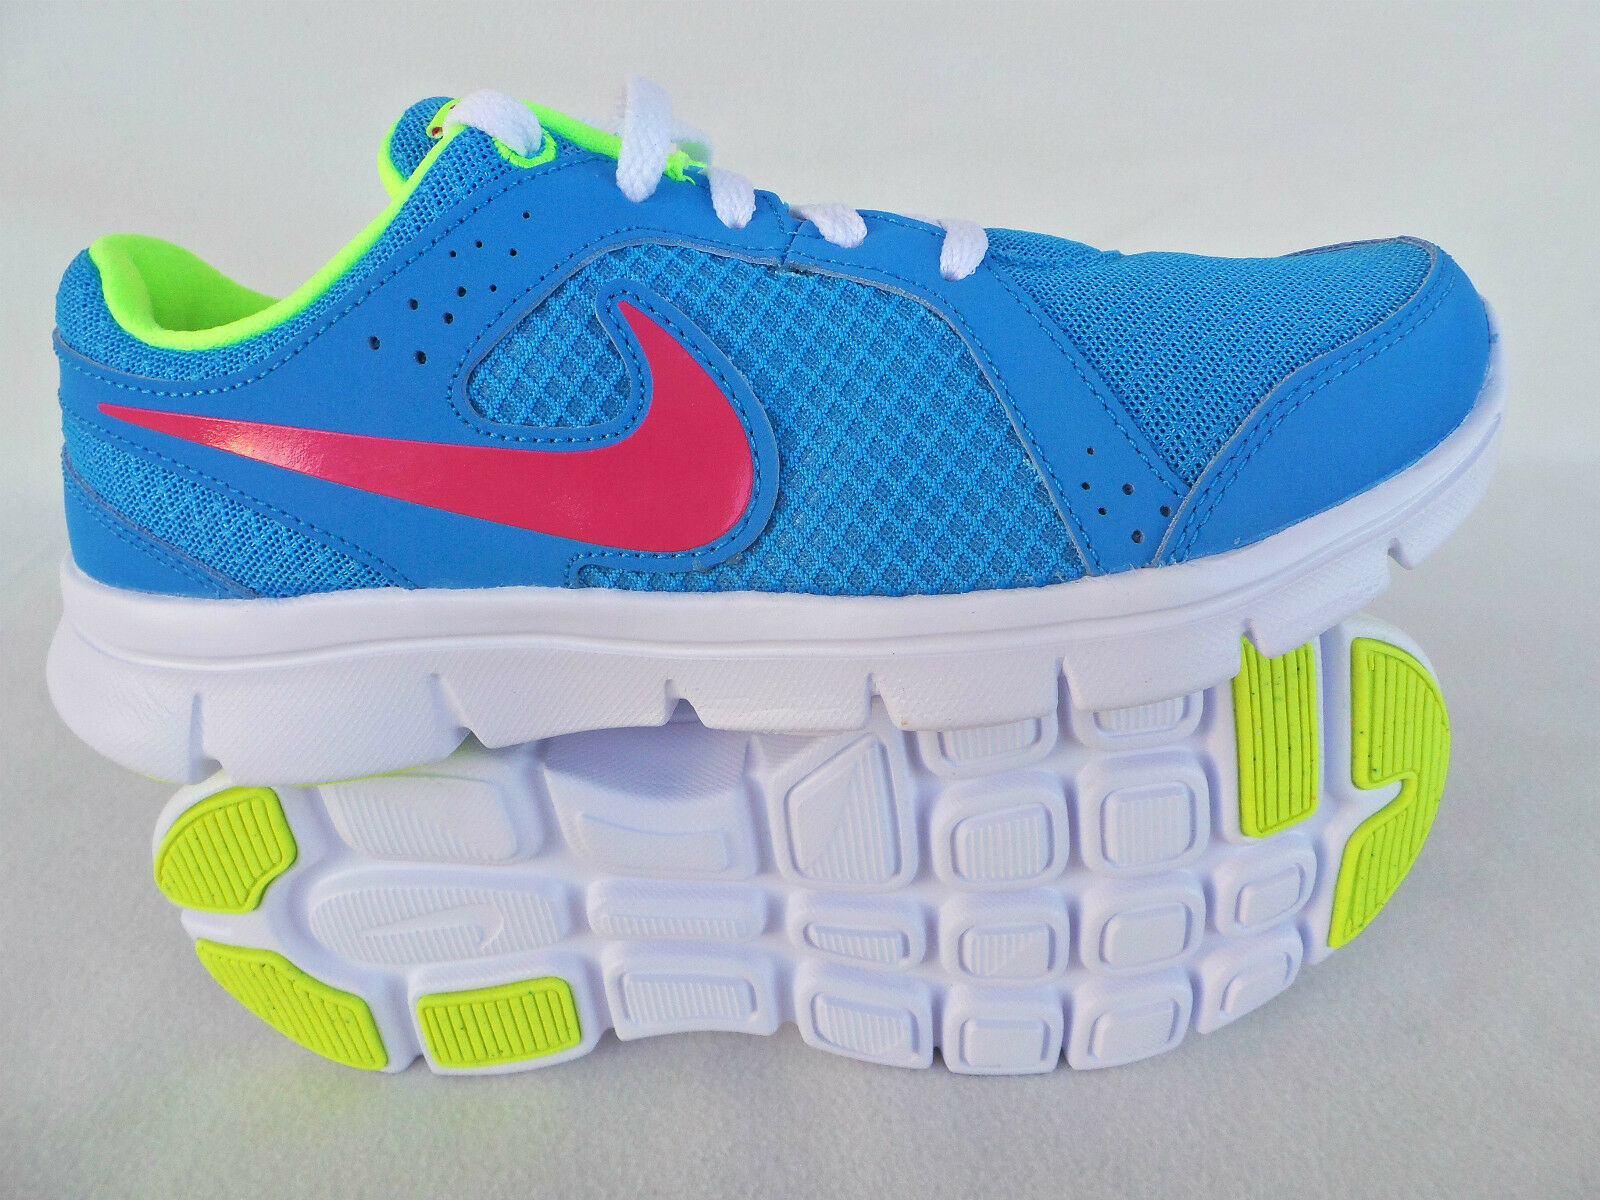 NIKE SNEAKERS LADIES GIRLS FITNESS FLEX Jogging shoes Light bluee Size 36 37 38, 5